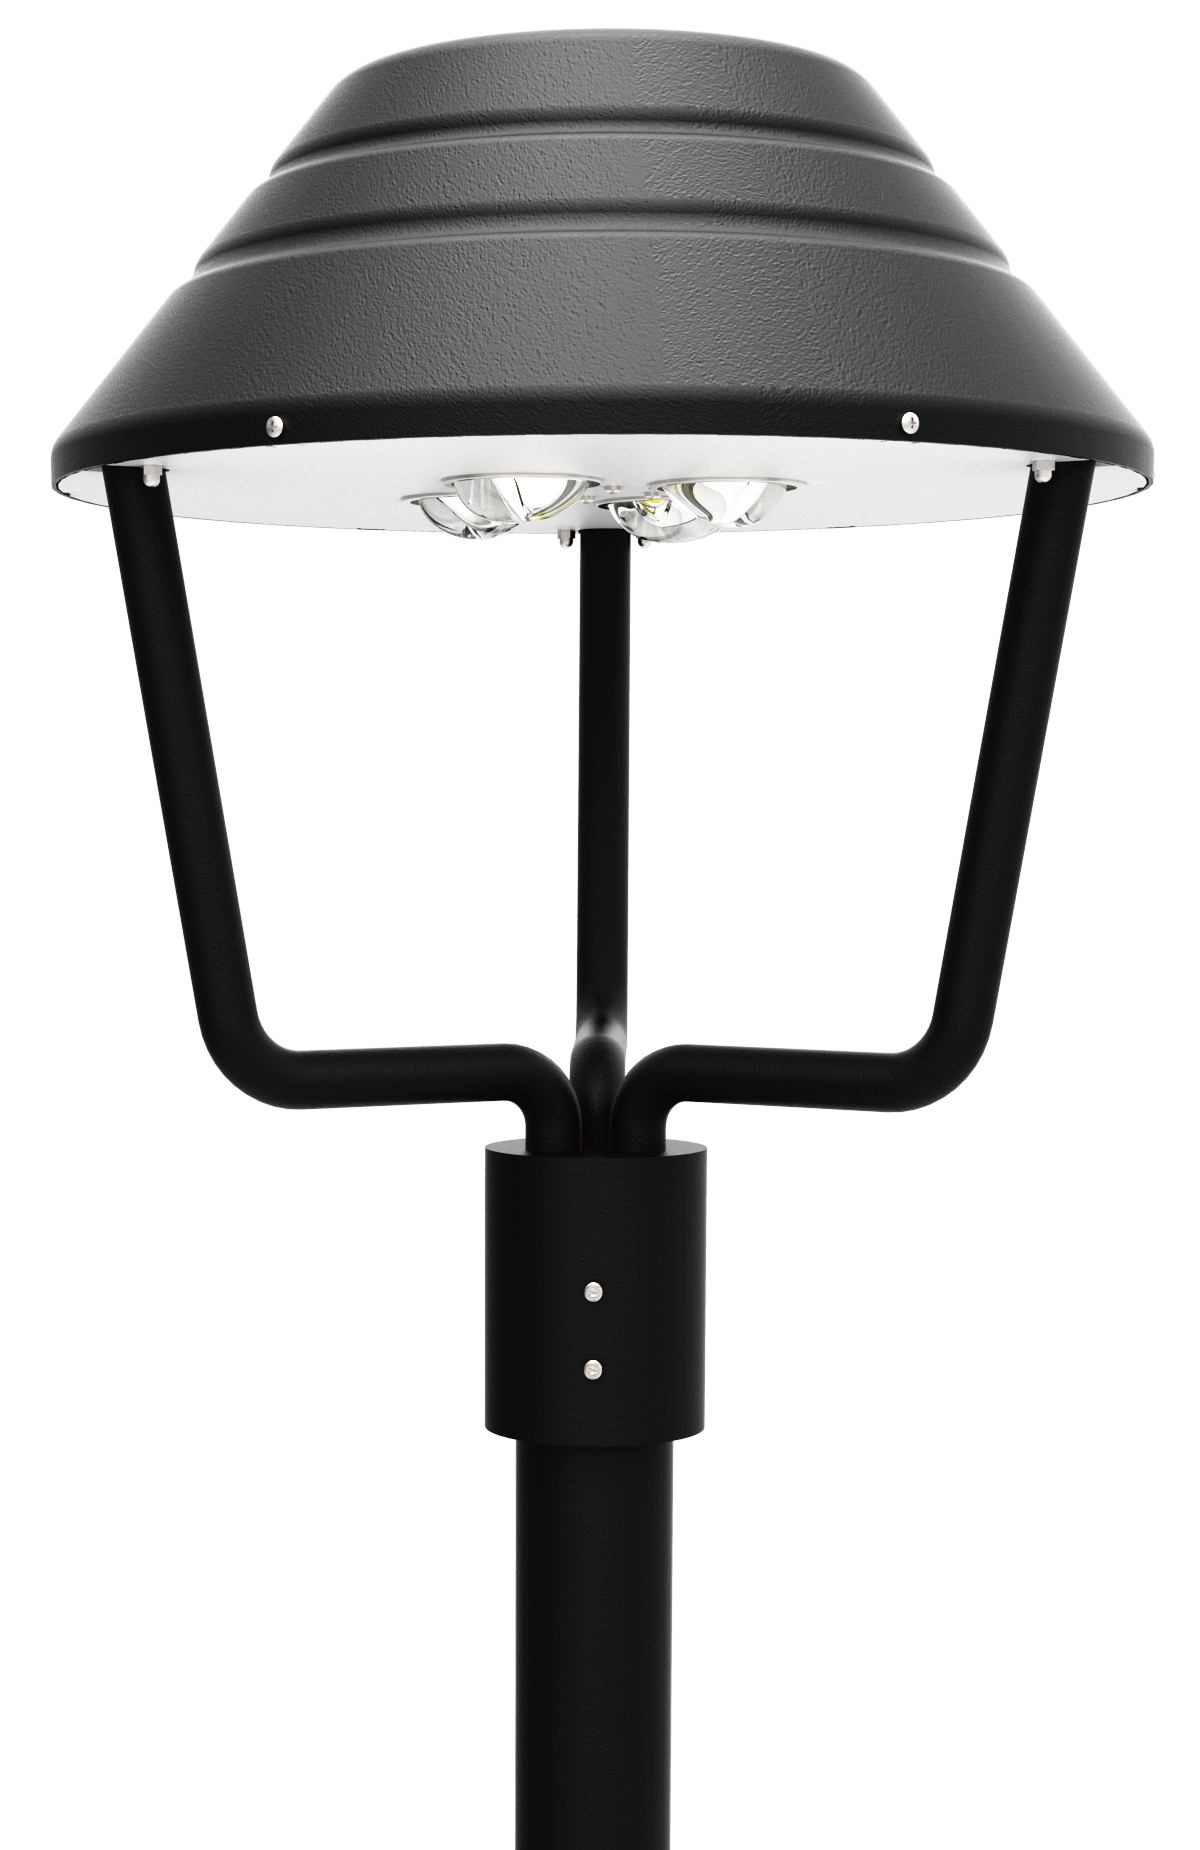 Led post top light fixtures led outdoor light fixtures for Luminaire outdoor